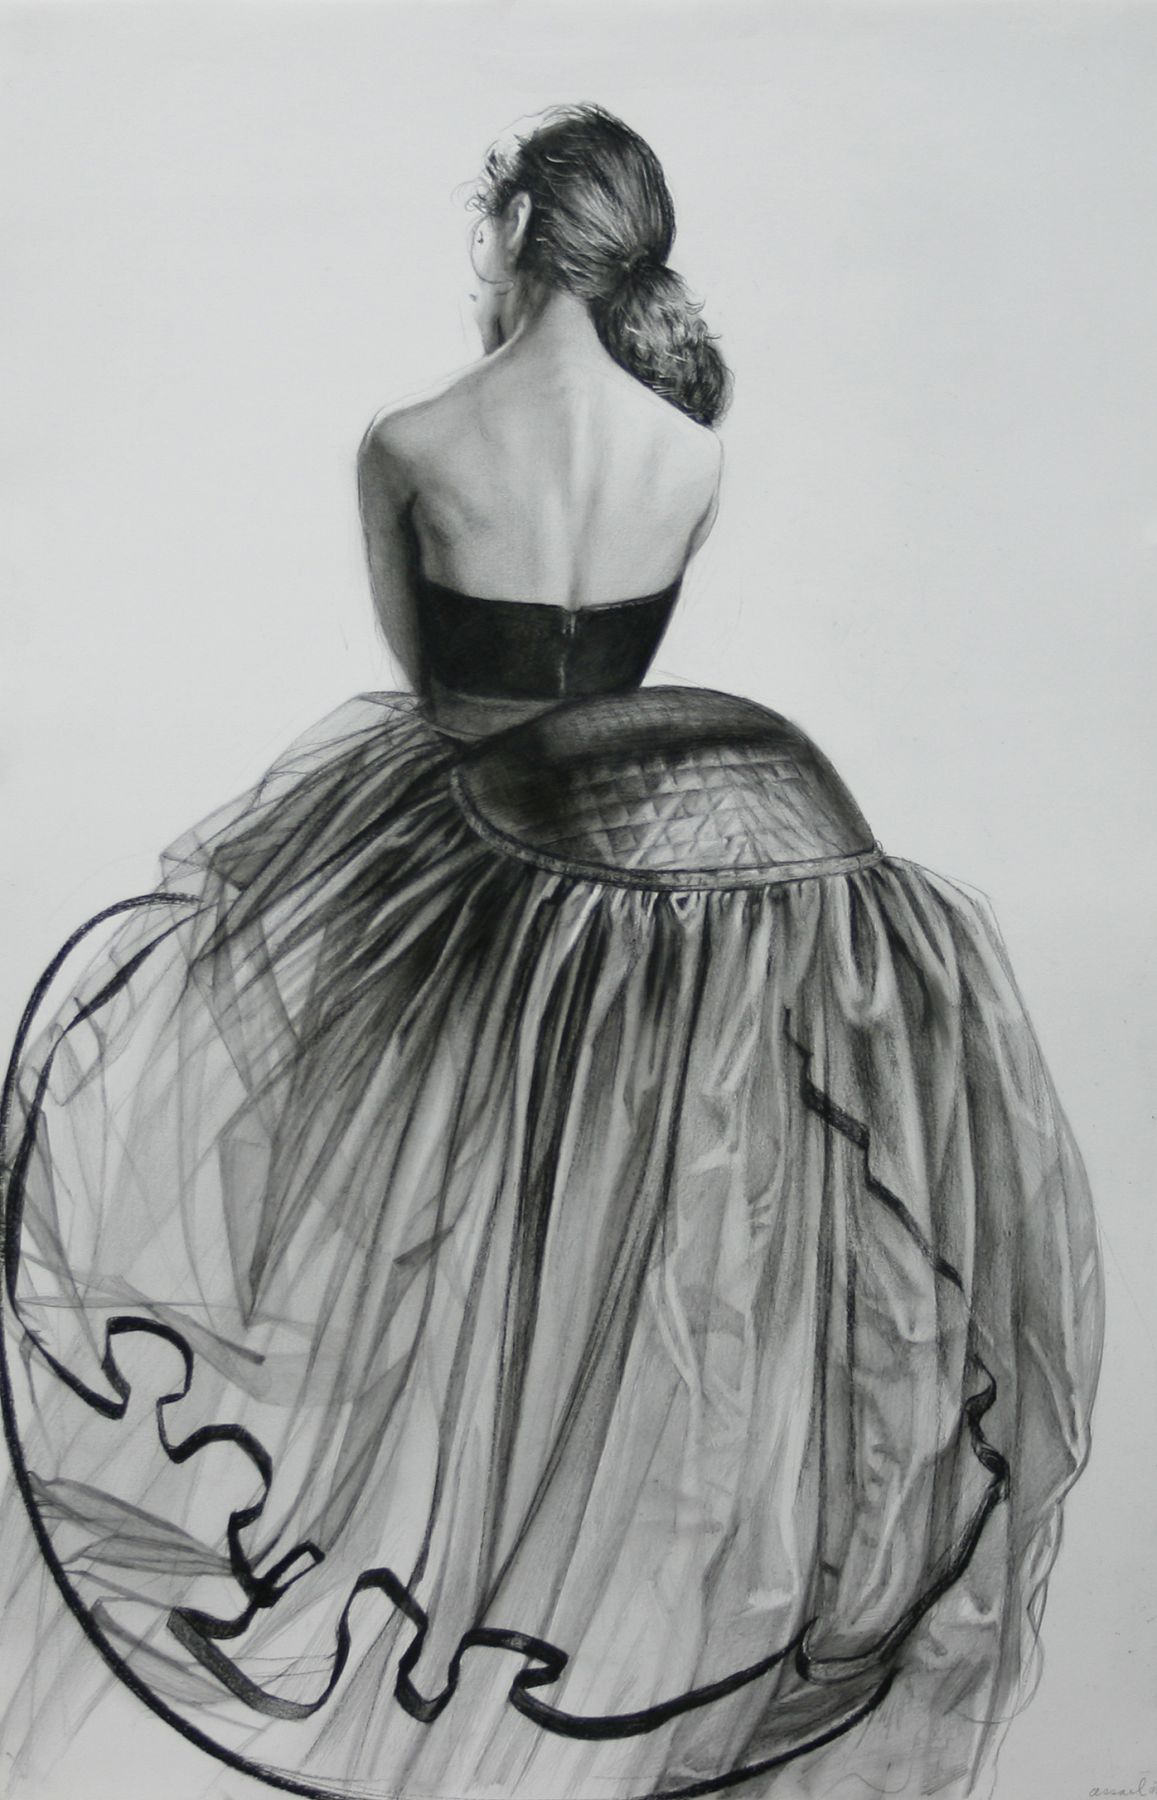 Steven Assael, Big Dress (SOLD), 2008, crayon and graphite on paper, 19 3/4 x 12 7/8 inches